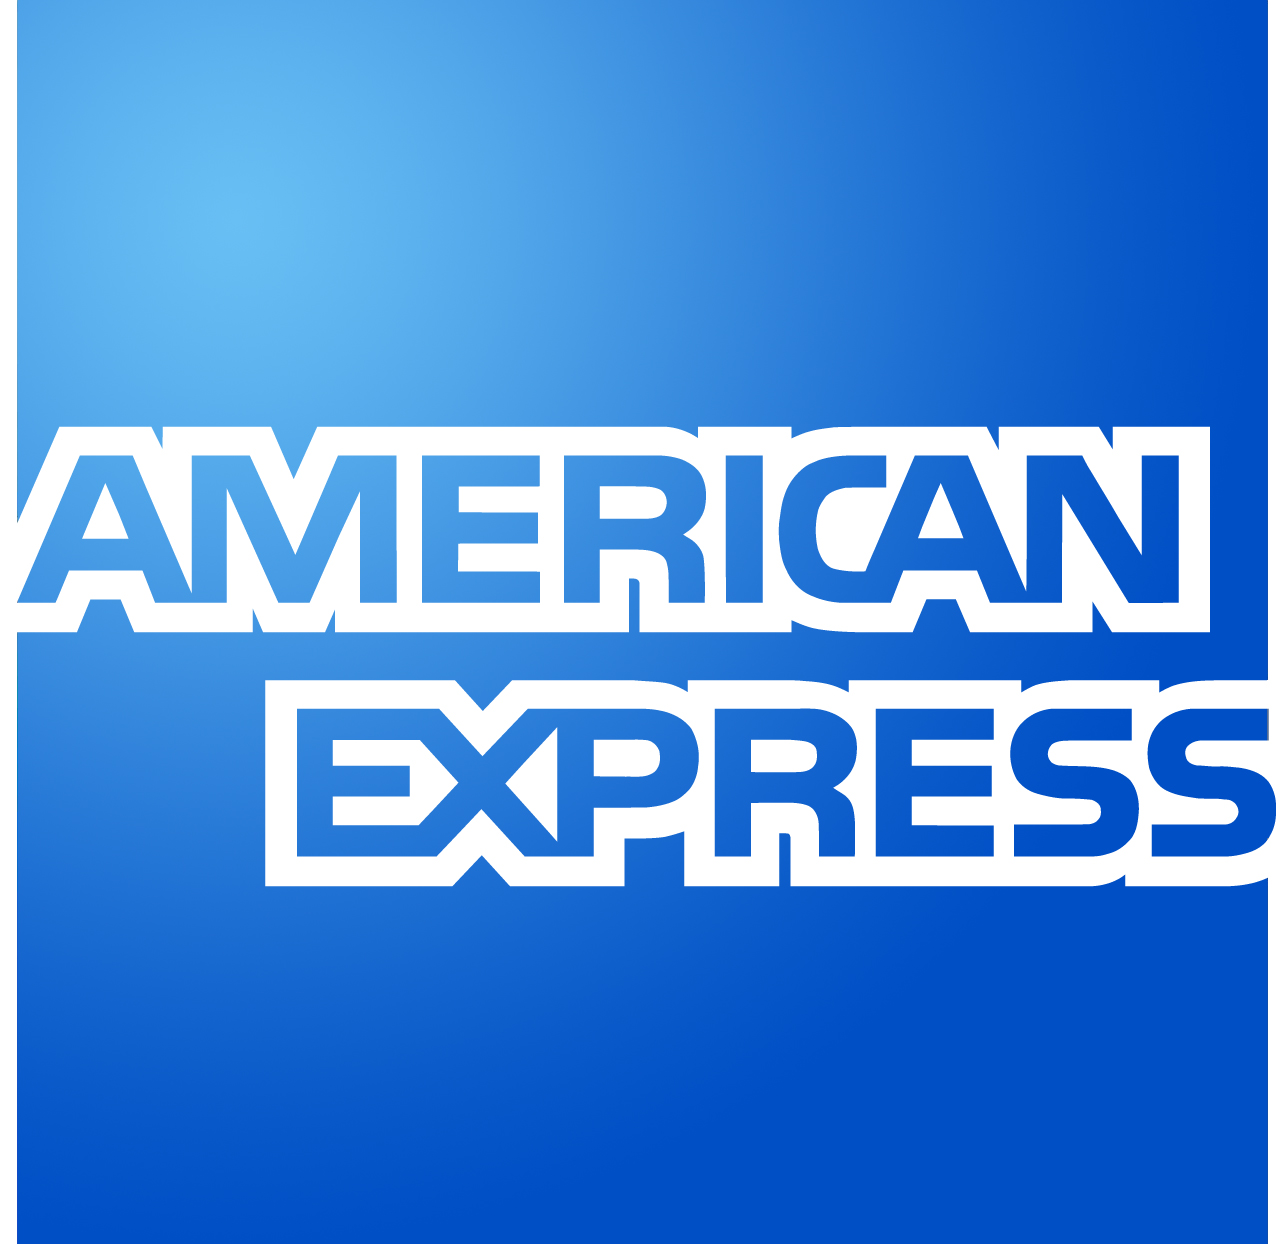 400 Membership Reward Points When Spending £10+ @ Tesco with Your American Express Cards